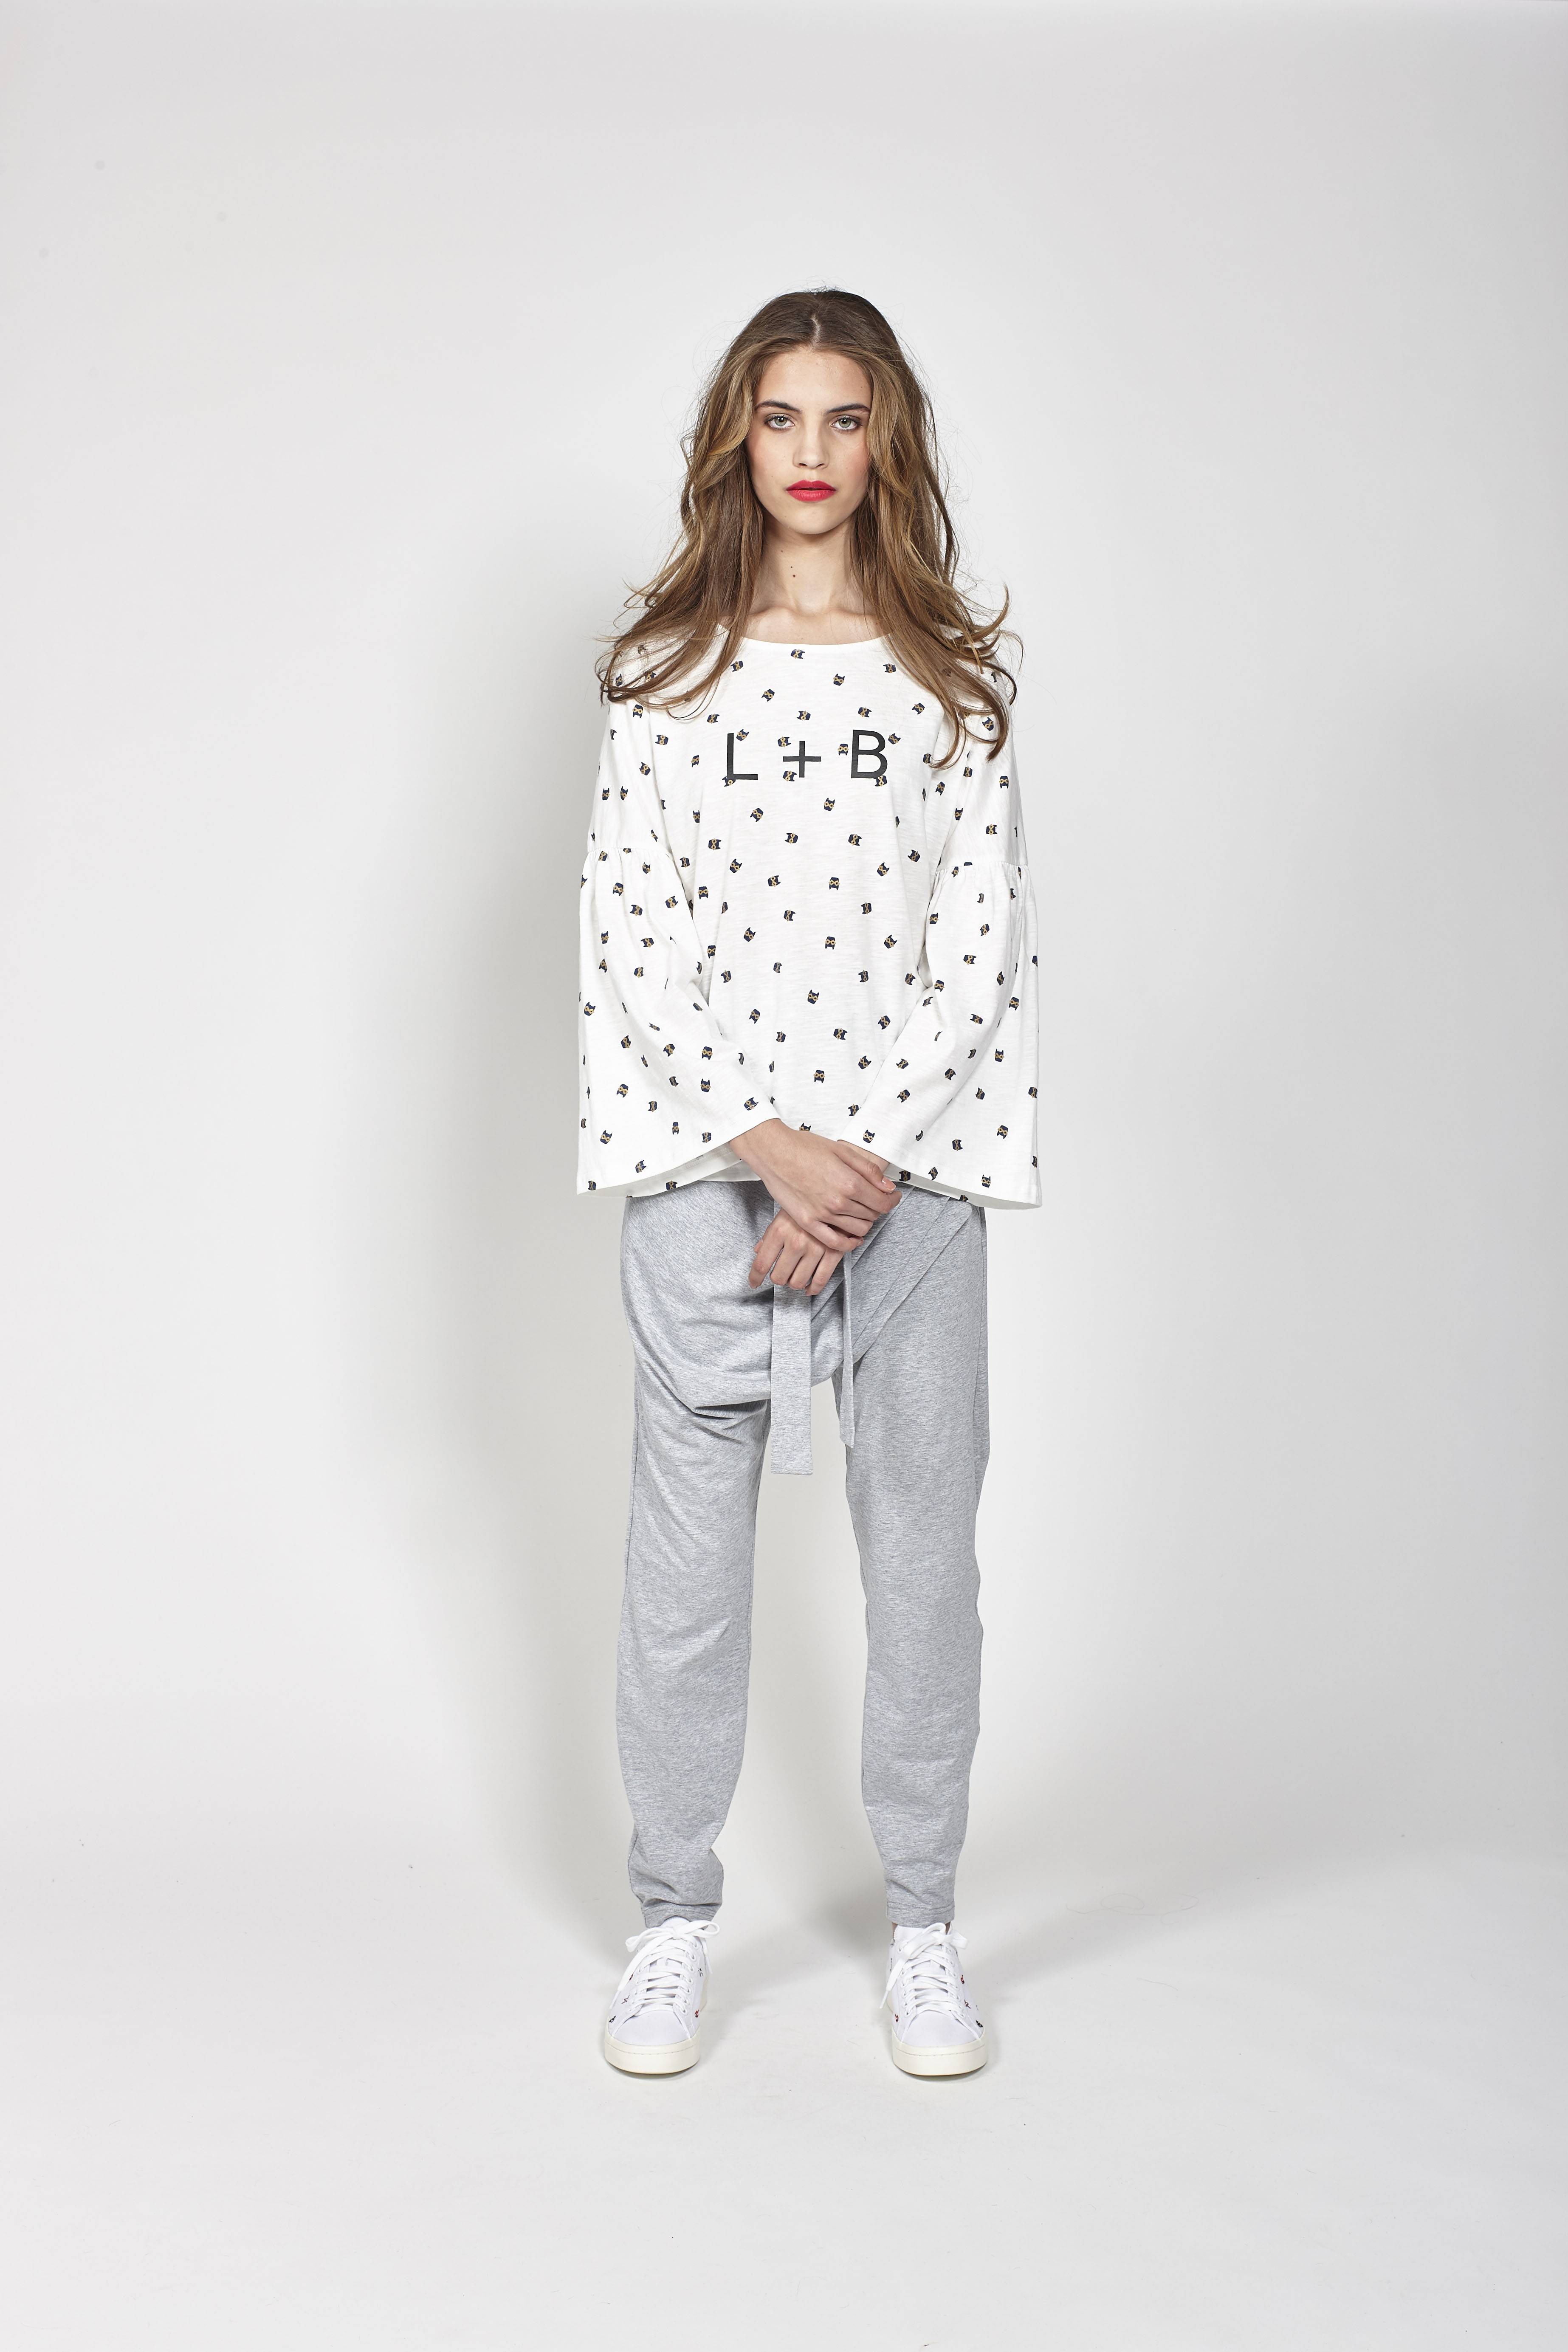 LB1083 LEO+BE Discover Tee, RRP$125.00 and LB1095 LEO+BE Rome Pant, RRP$139.00